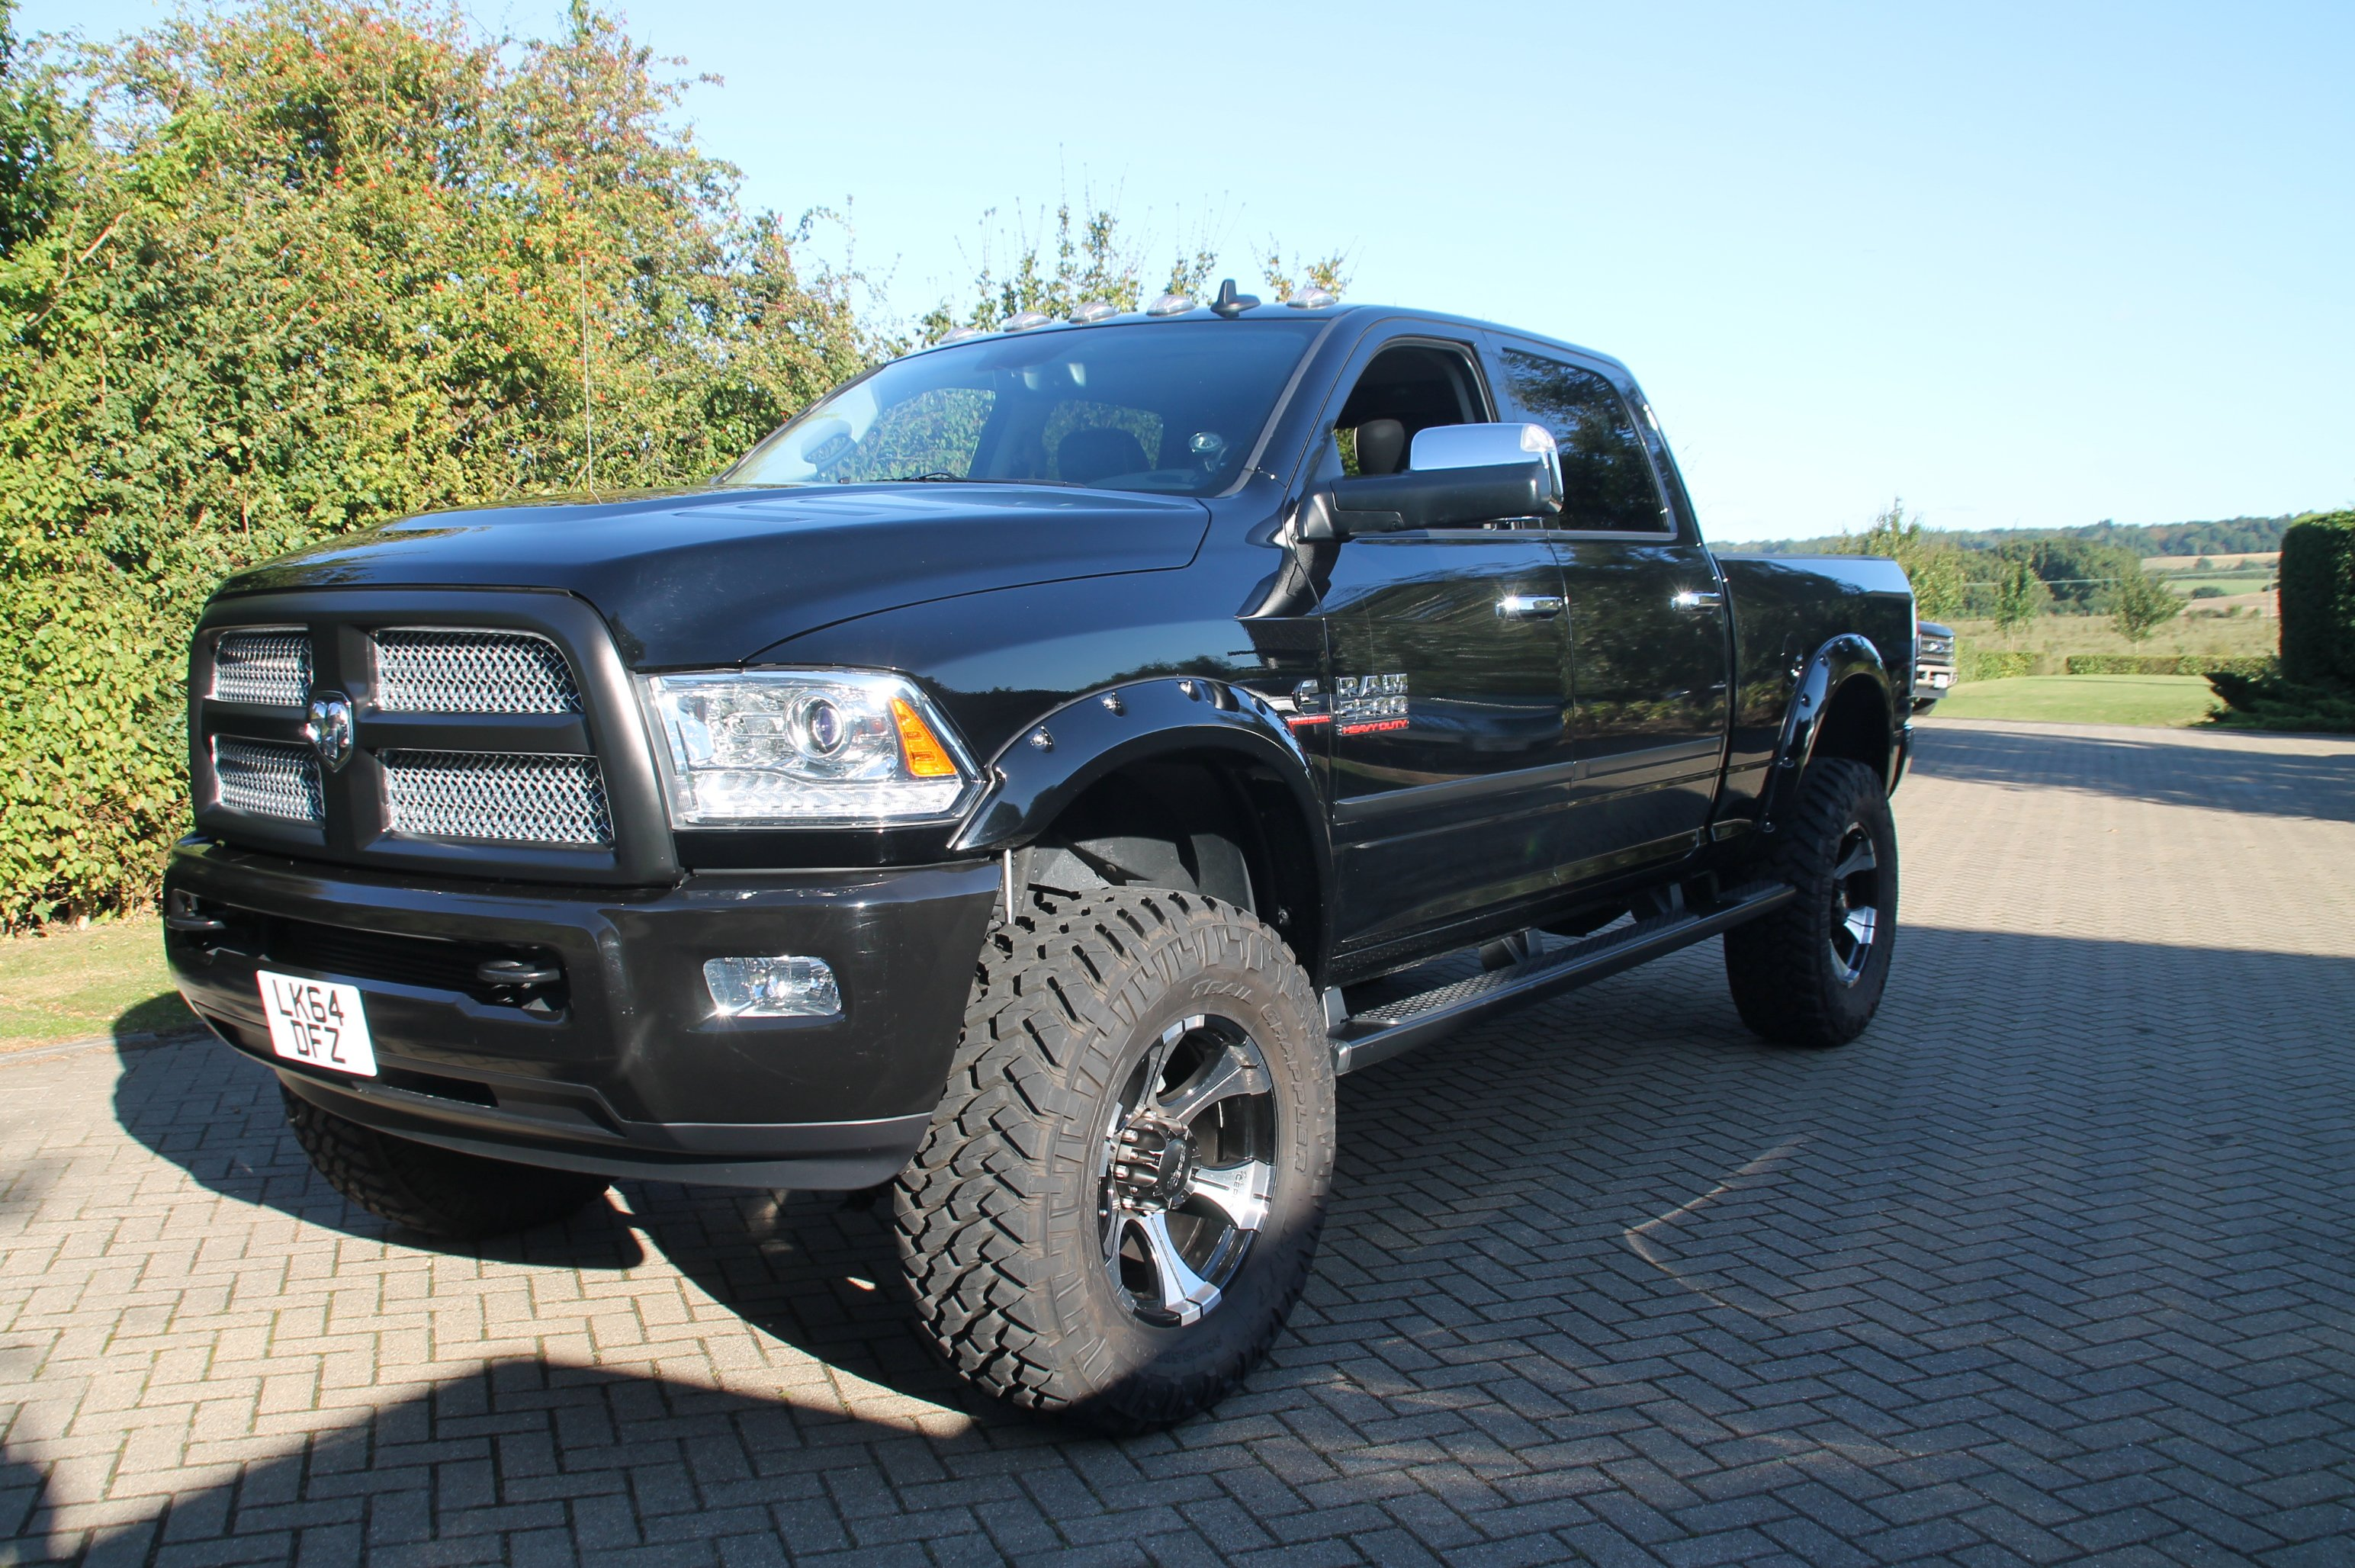 2014 dodge ram 2500 limited crew cab diesel monster truck. Black Bedroom Furniture Sets. Home Design Ideas